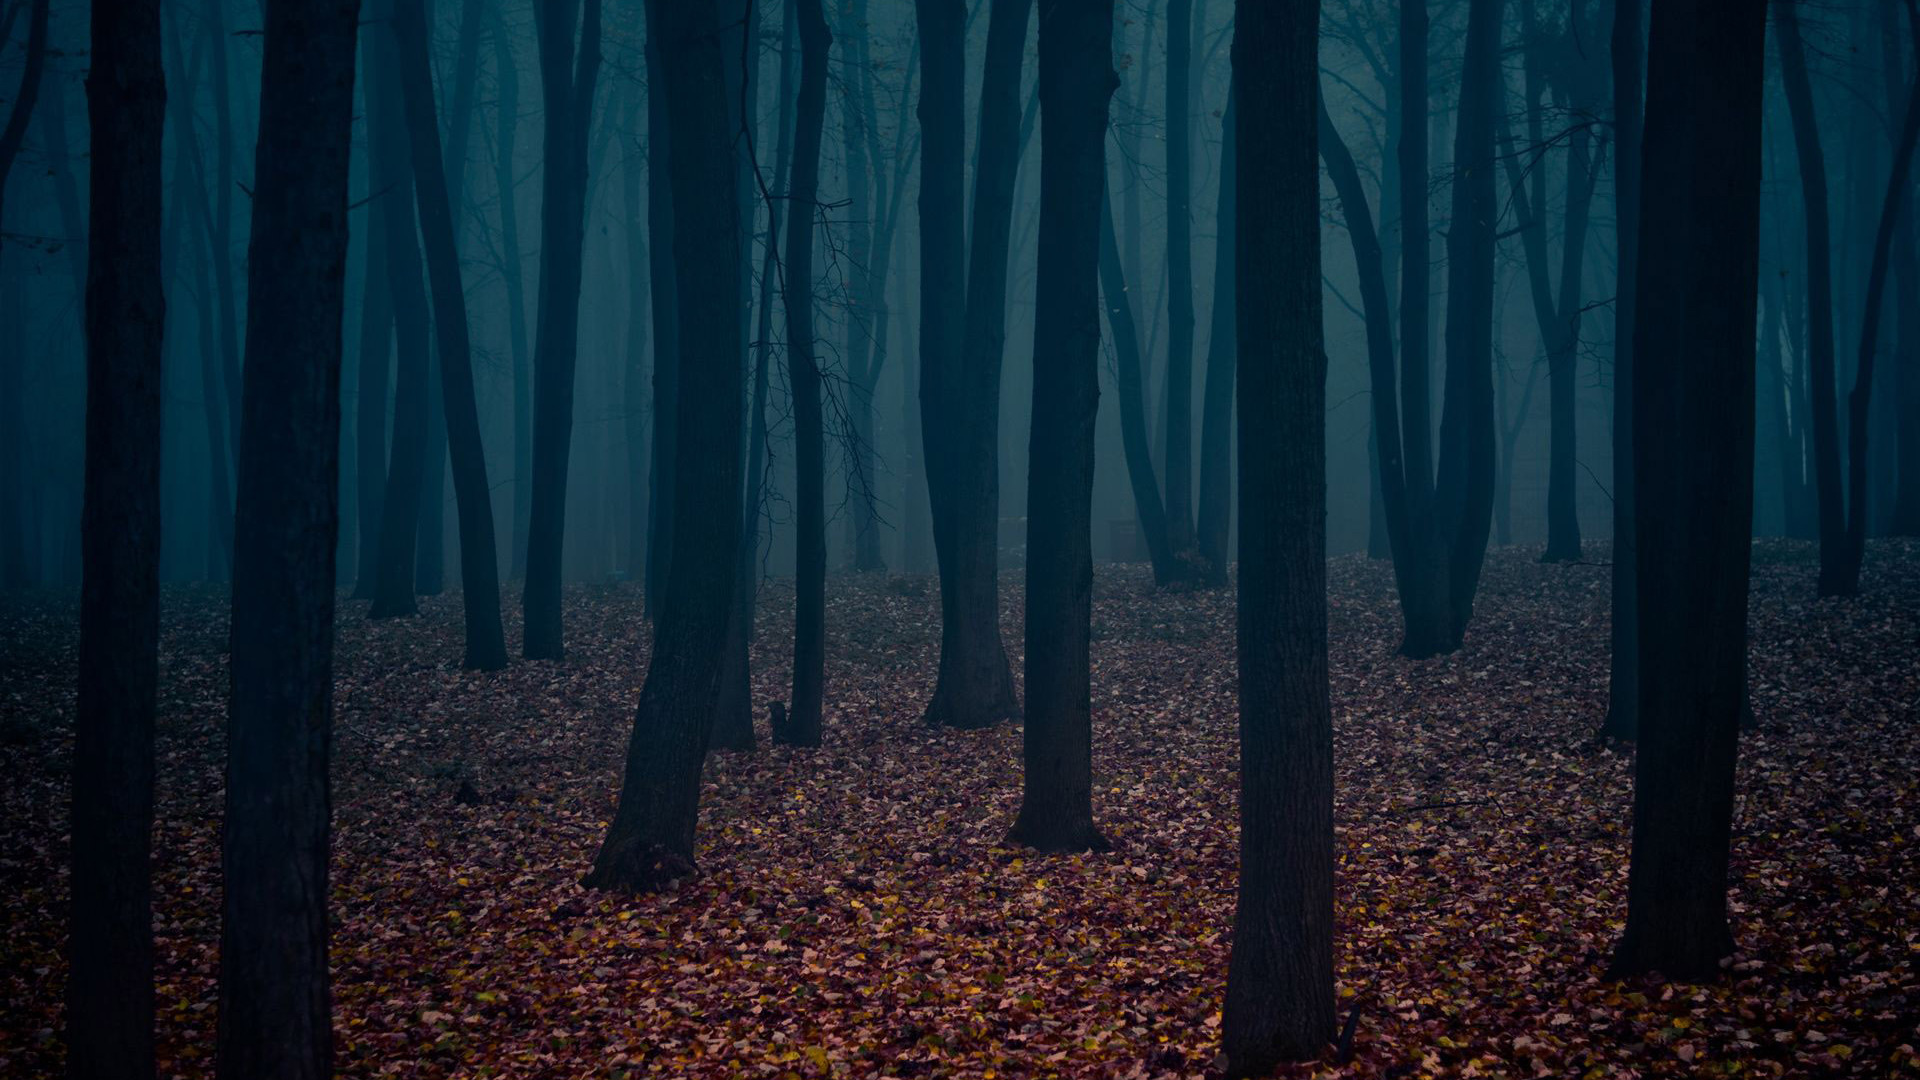 dark-autumn-forest-nature-hd-wallpaper-1920x1080-2520